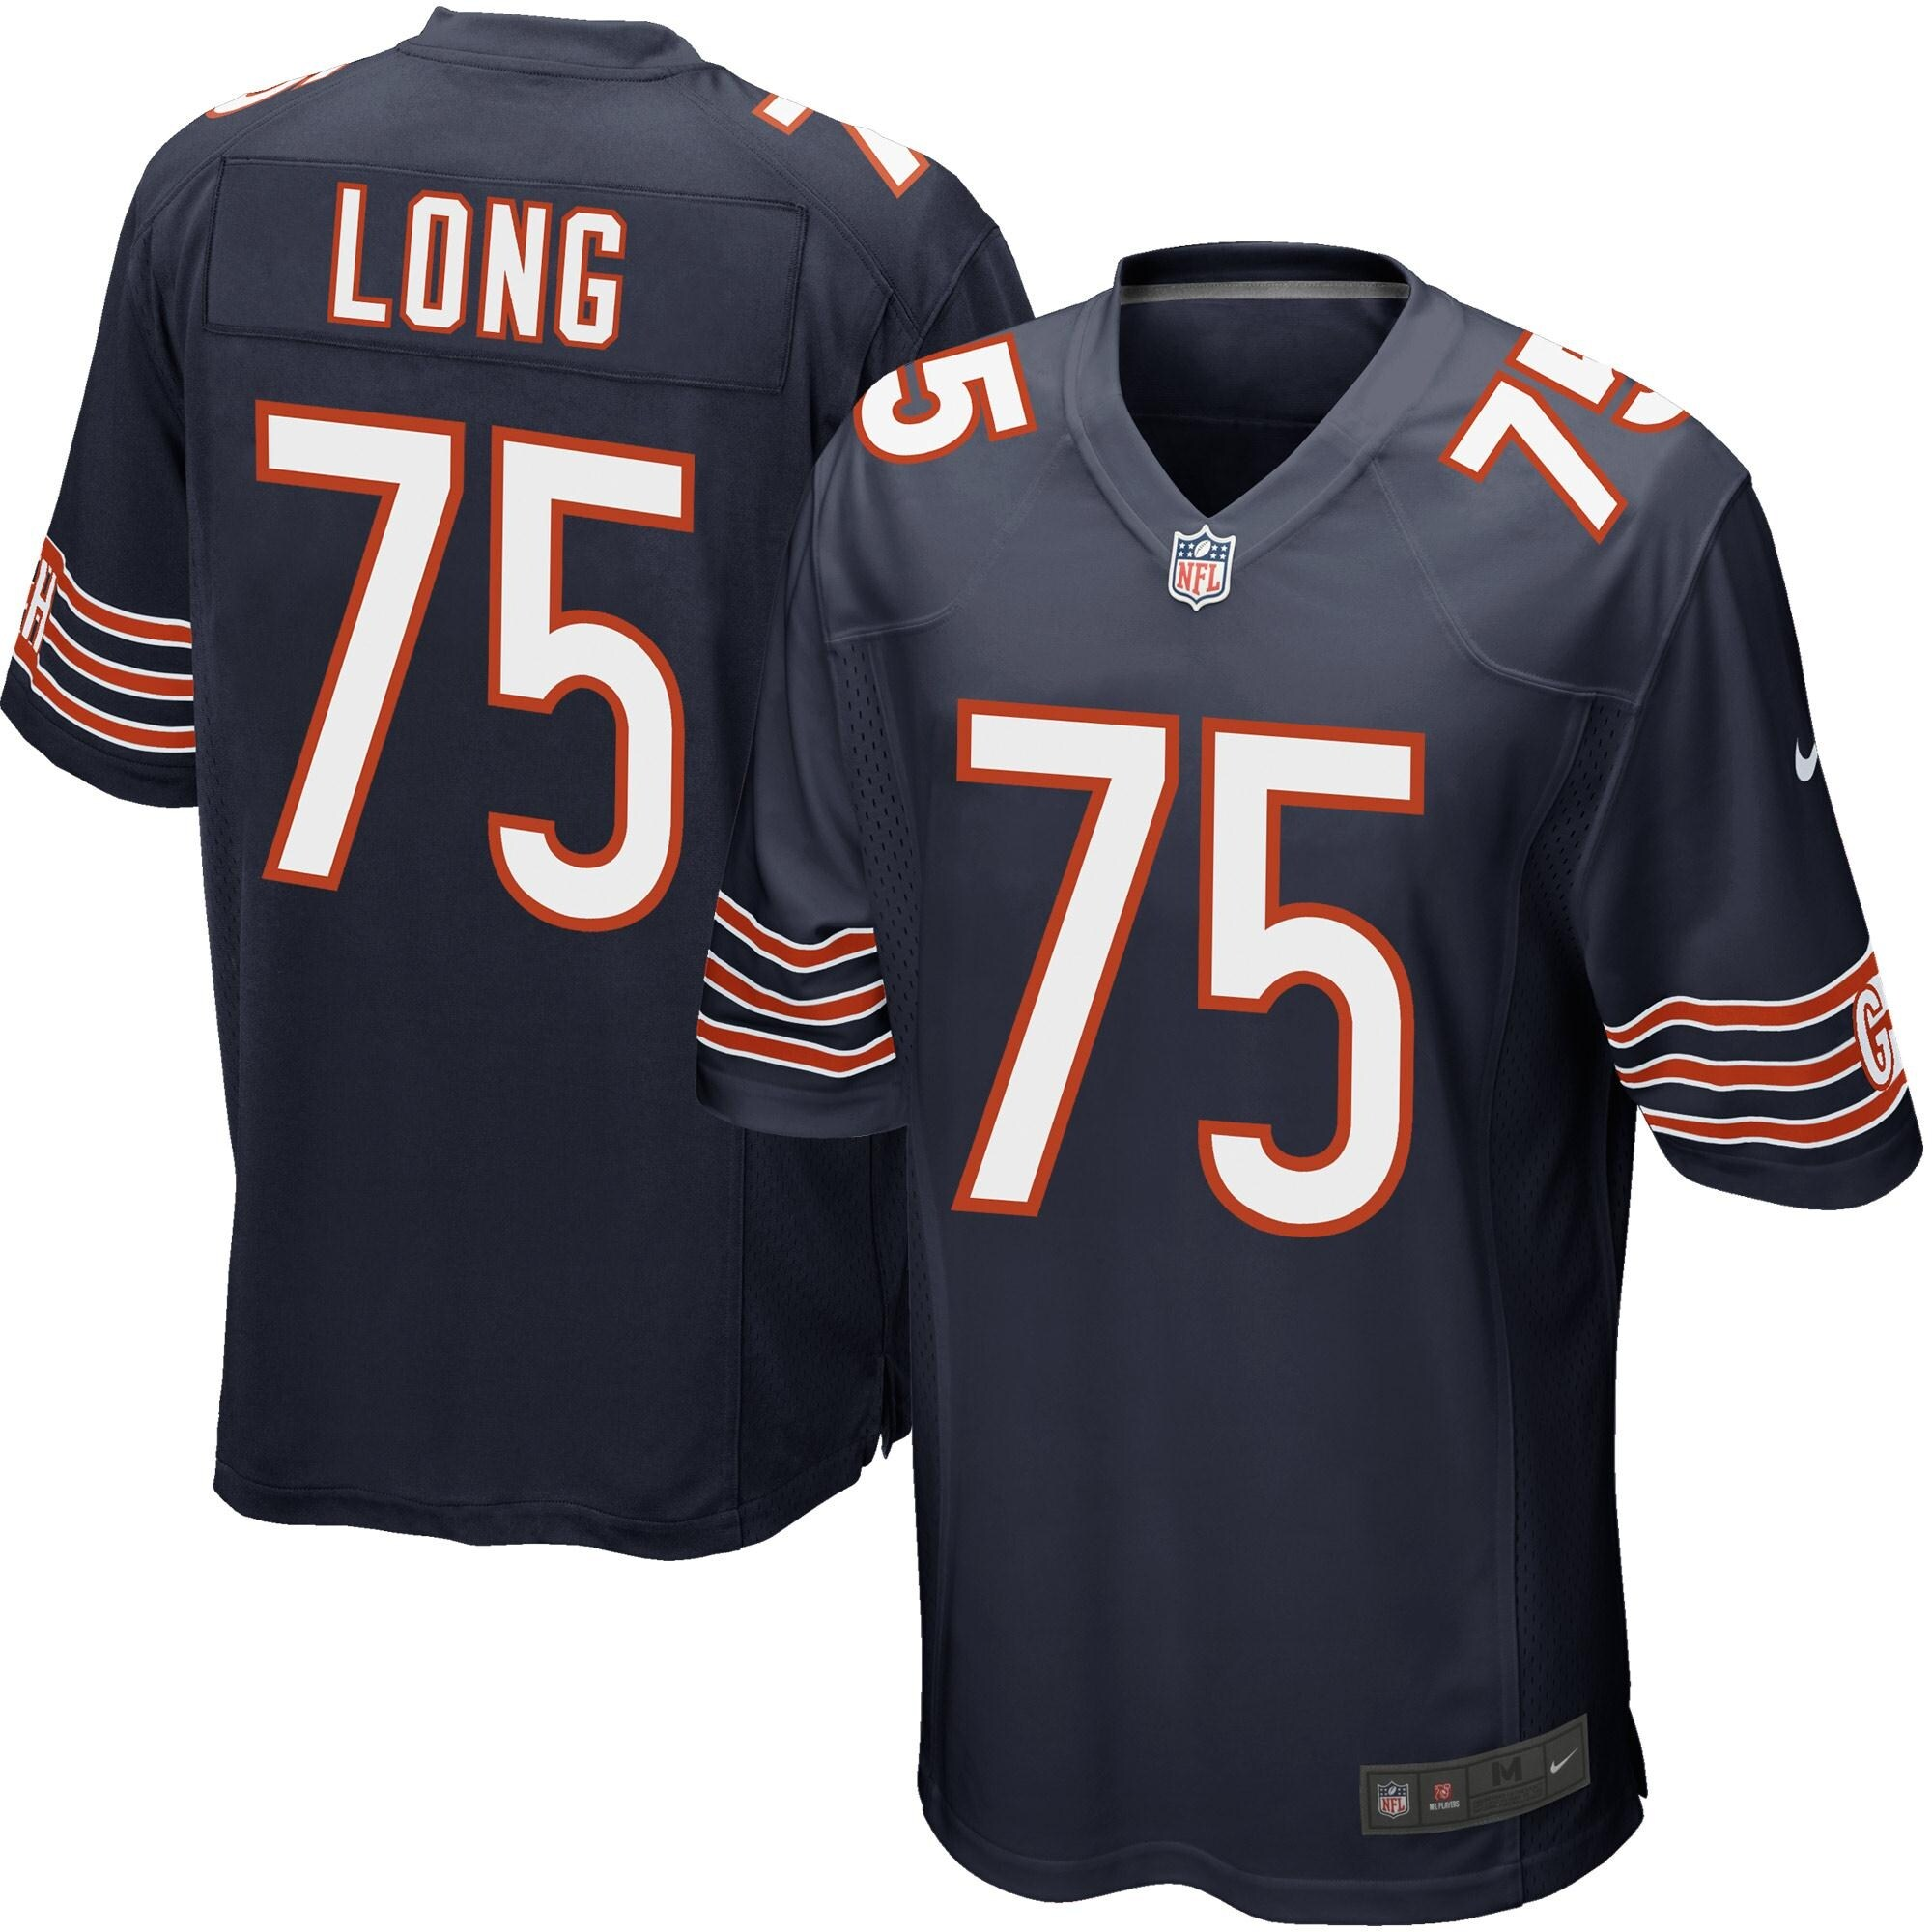 Kyle Long Chicago Bears Youth Nike Team Color Game Jersey - Navy Blue